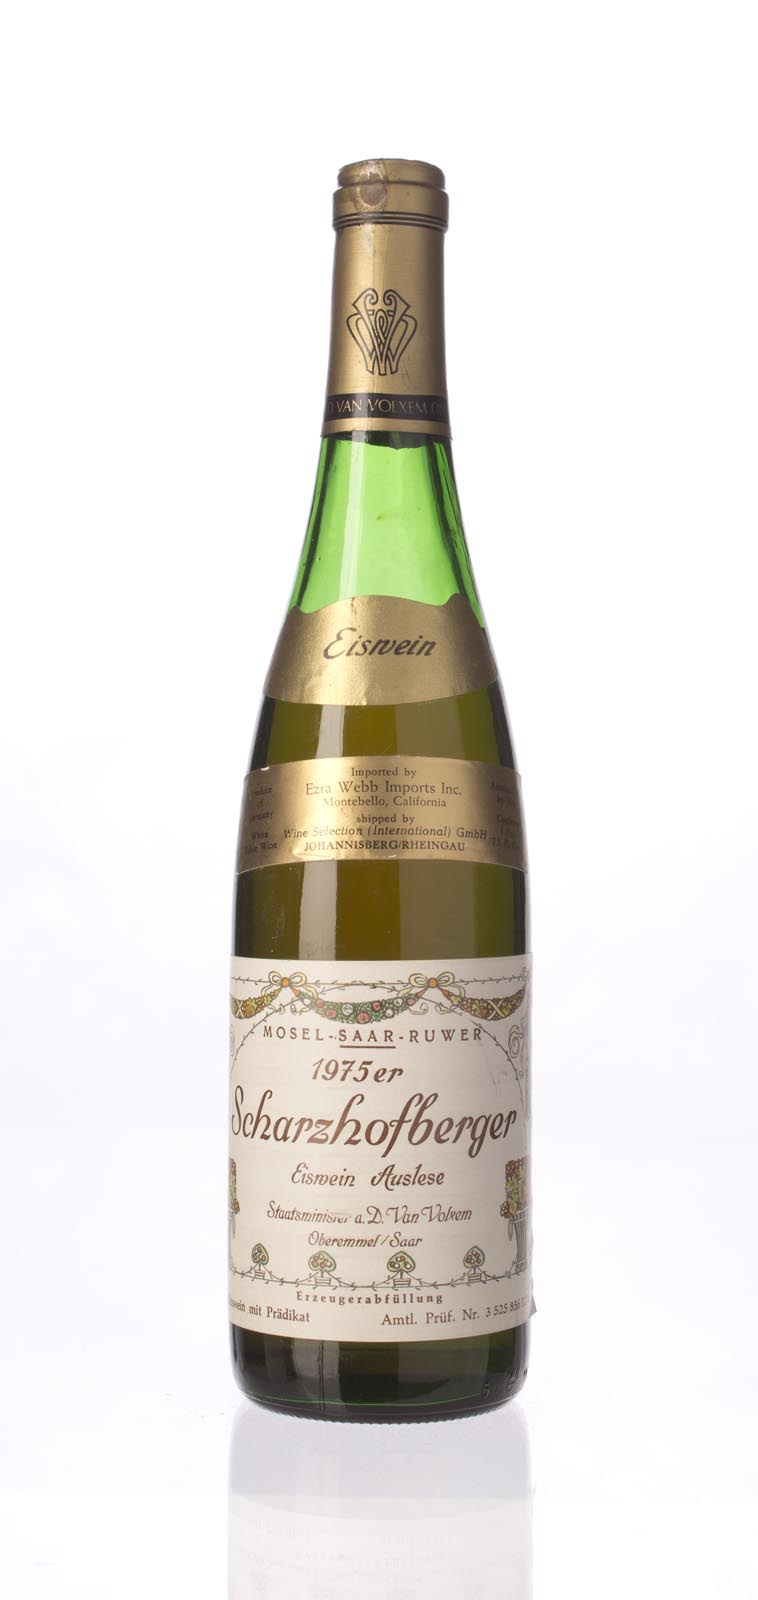 Van Volxem Scharzhofberger Riesling Eiswein Gold Capsule 1975, 750mL () from The BPW - Merchants of rare and fine wines.